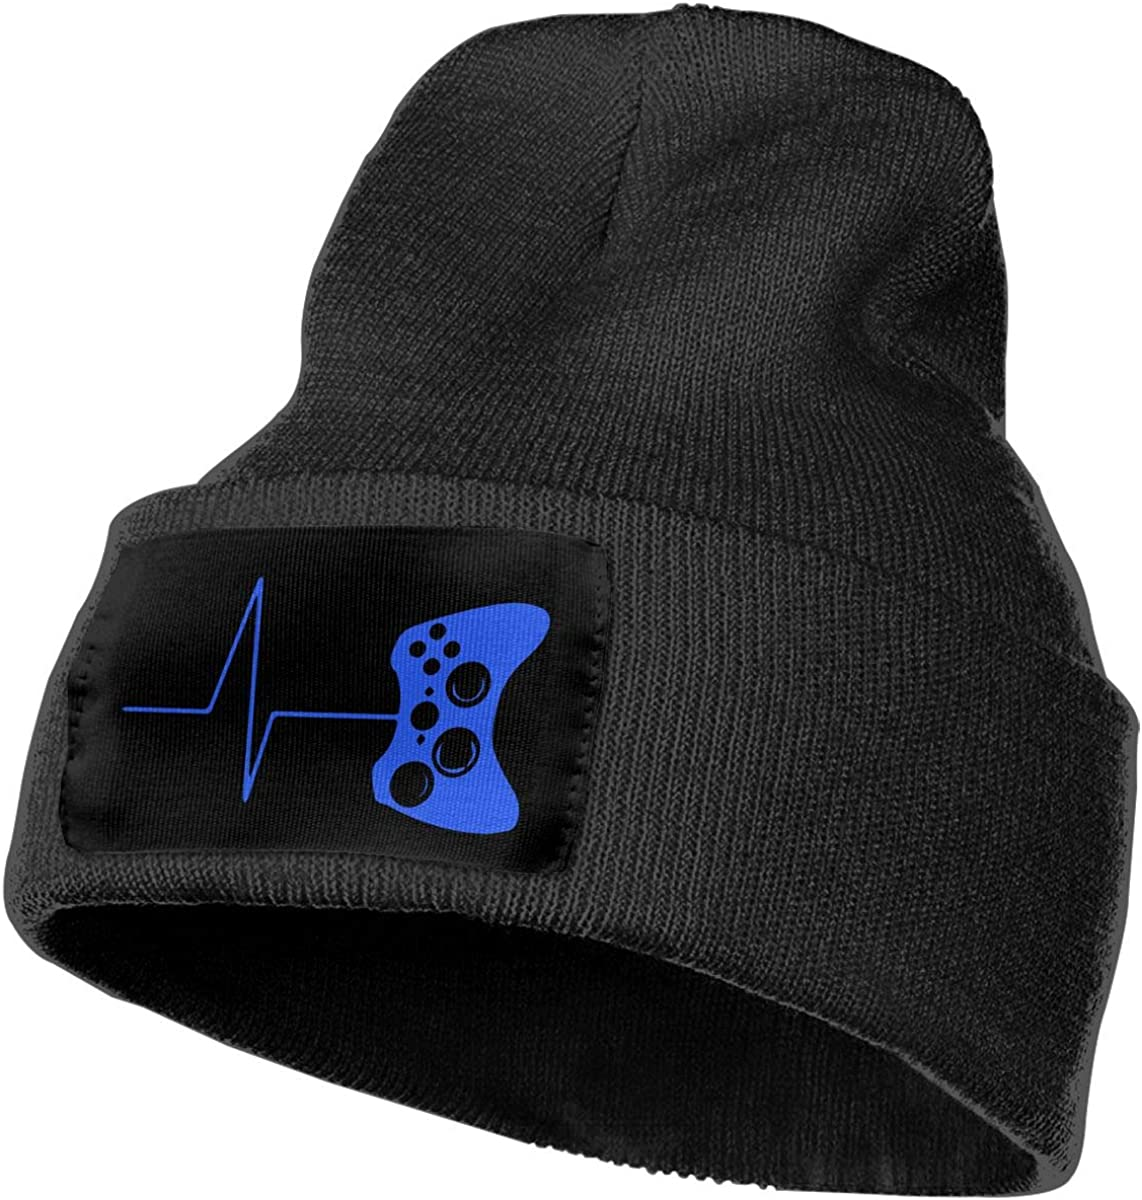 Heartbeat of A Gamer Unisex Solid Color Knit Beanie Hat Stretchy /& Soft Winter Ski Knit Cap